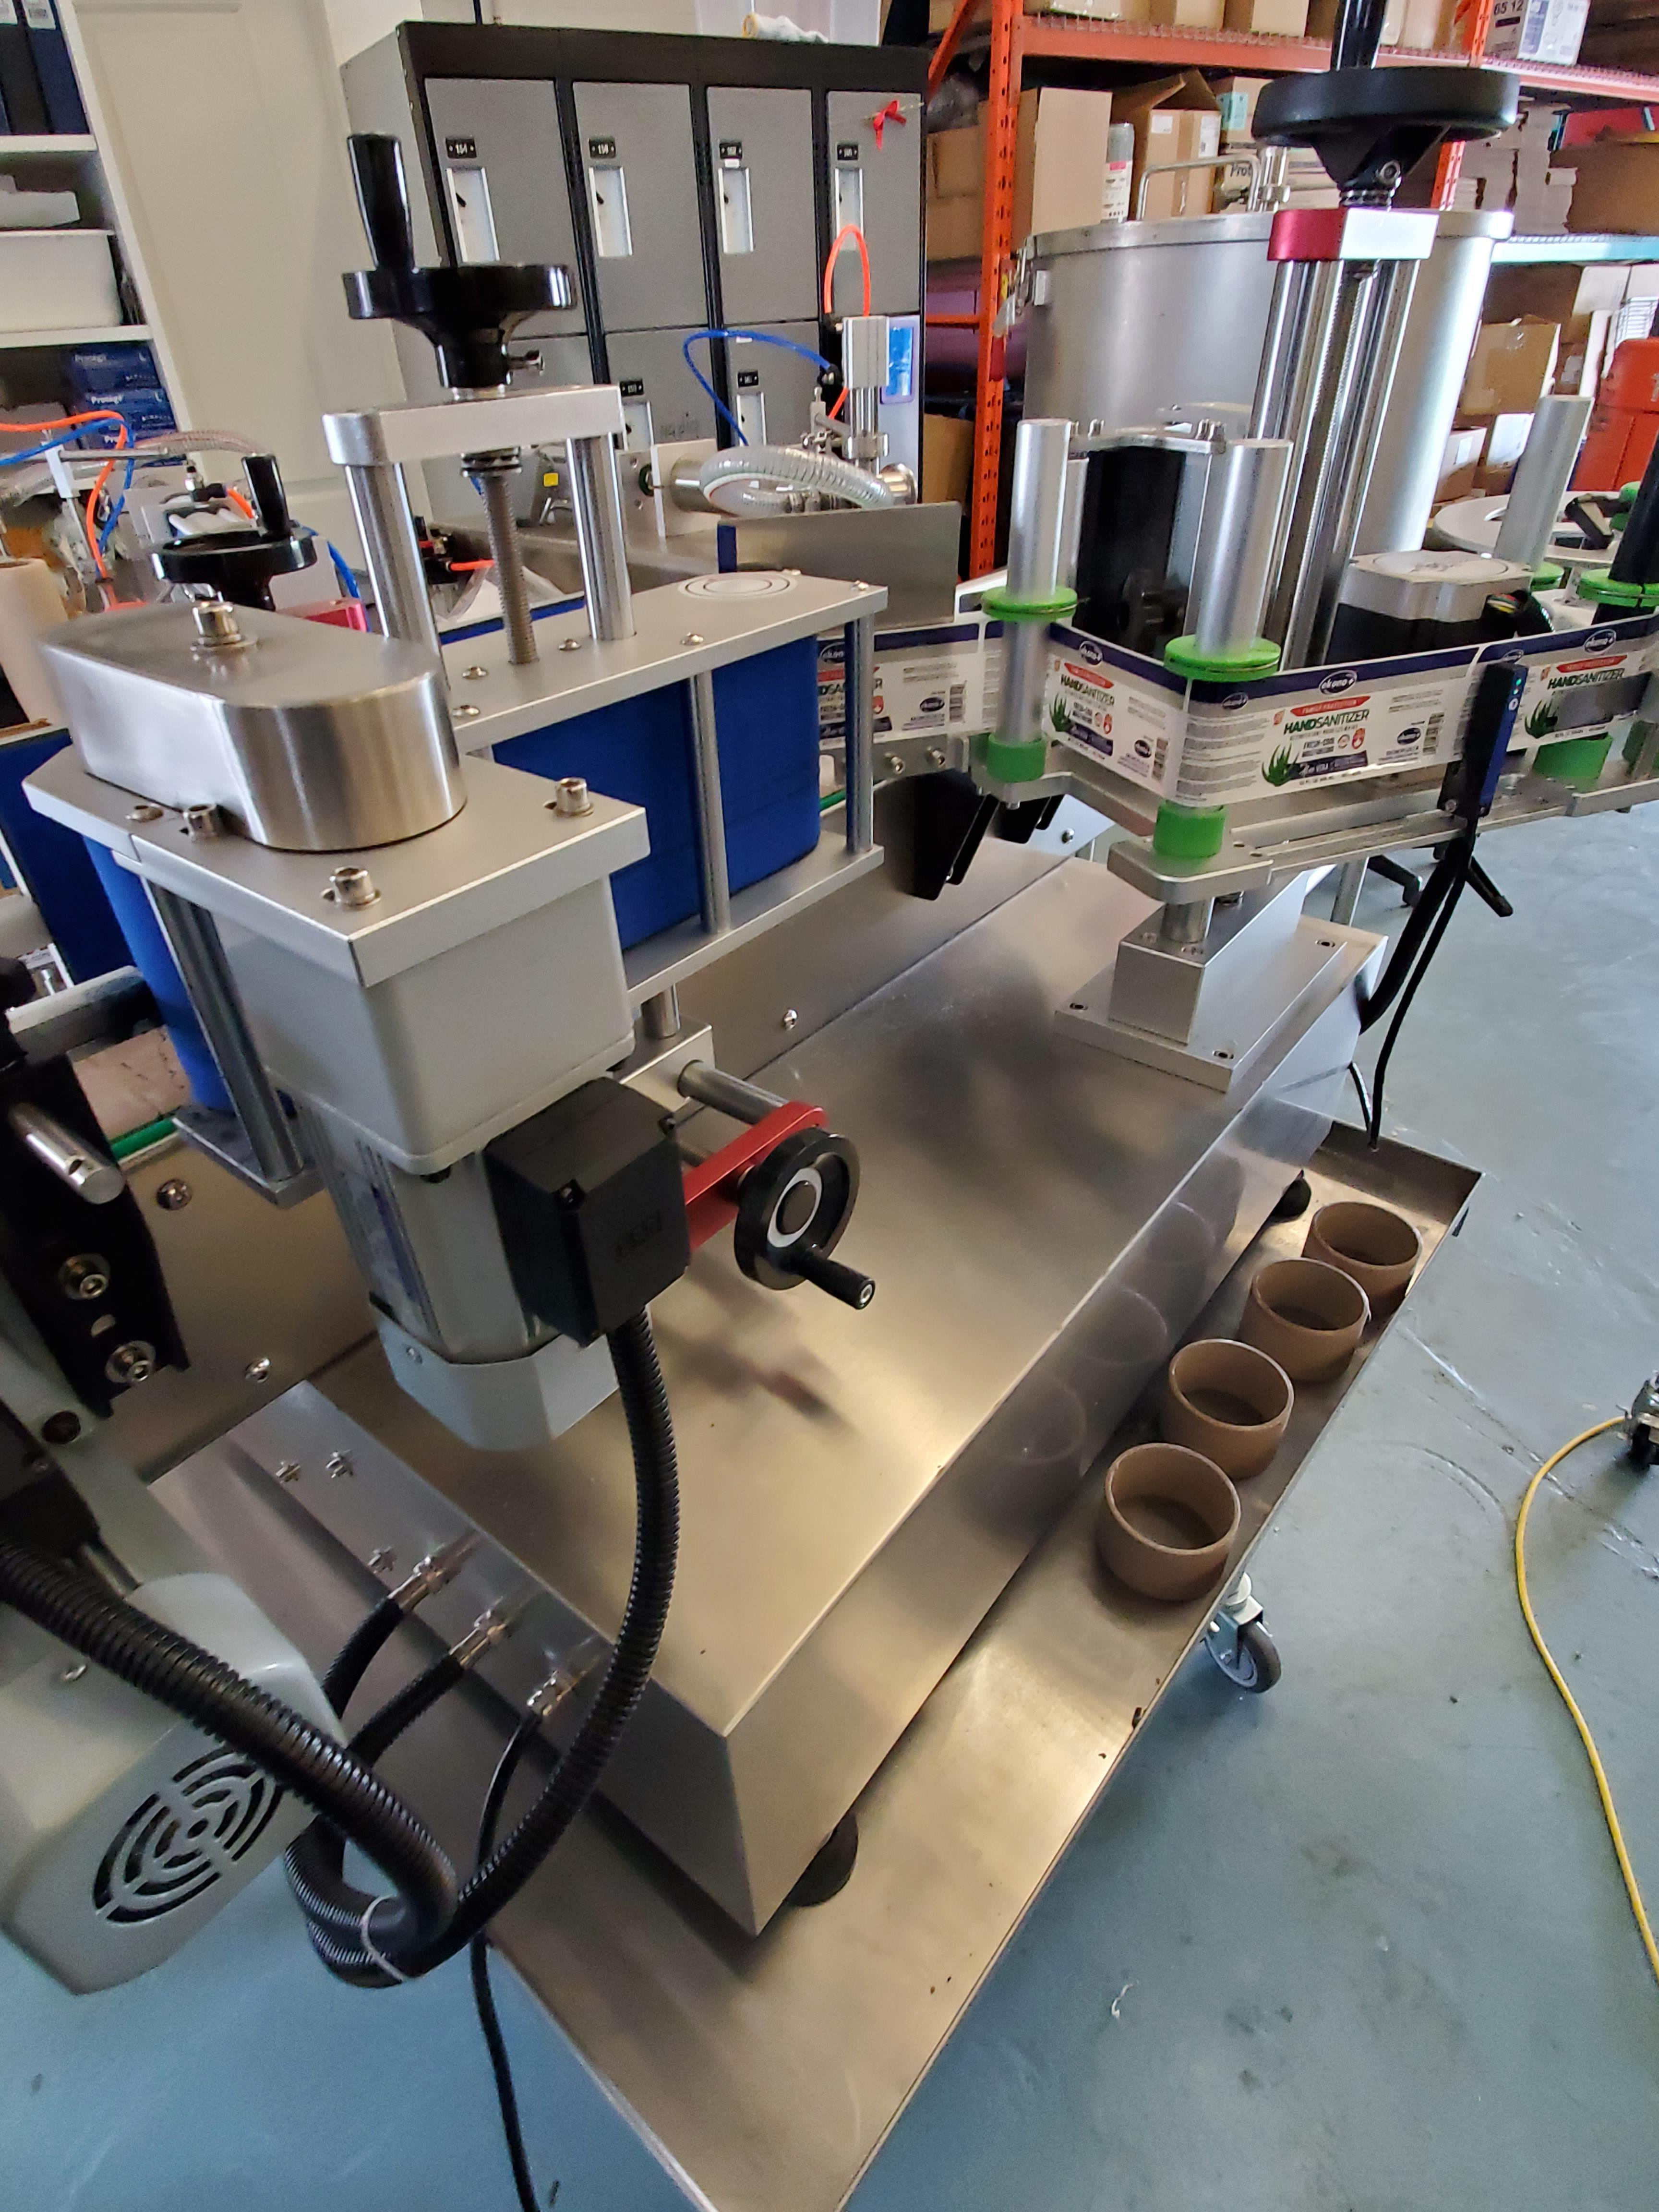 AM-300LM High Speed Pressure Sensitive wrap around labeler - Table Top Model - Image 2 of 5